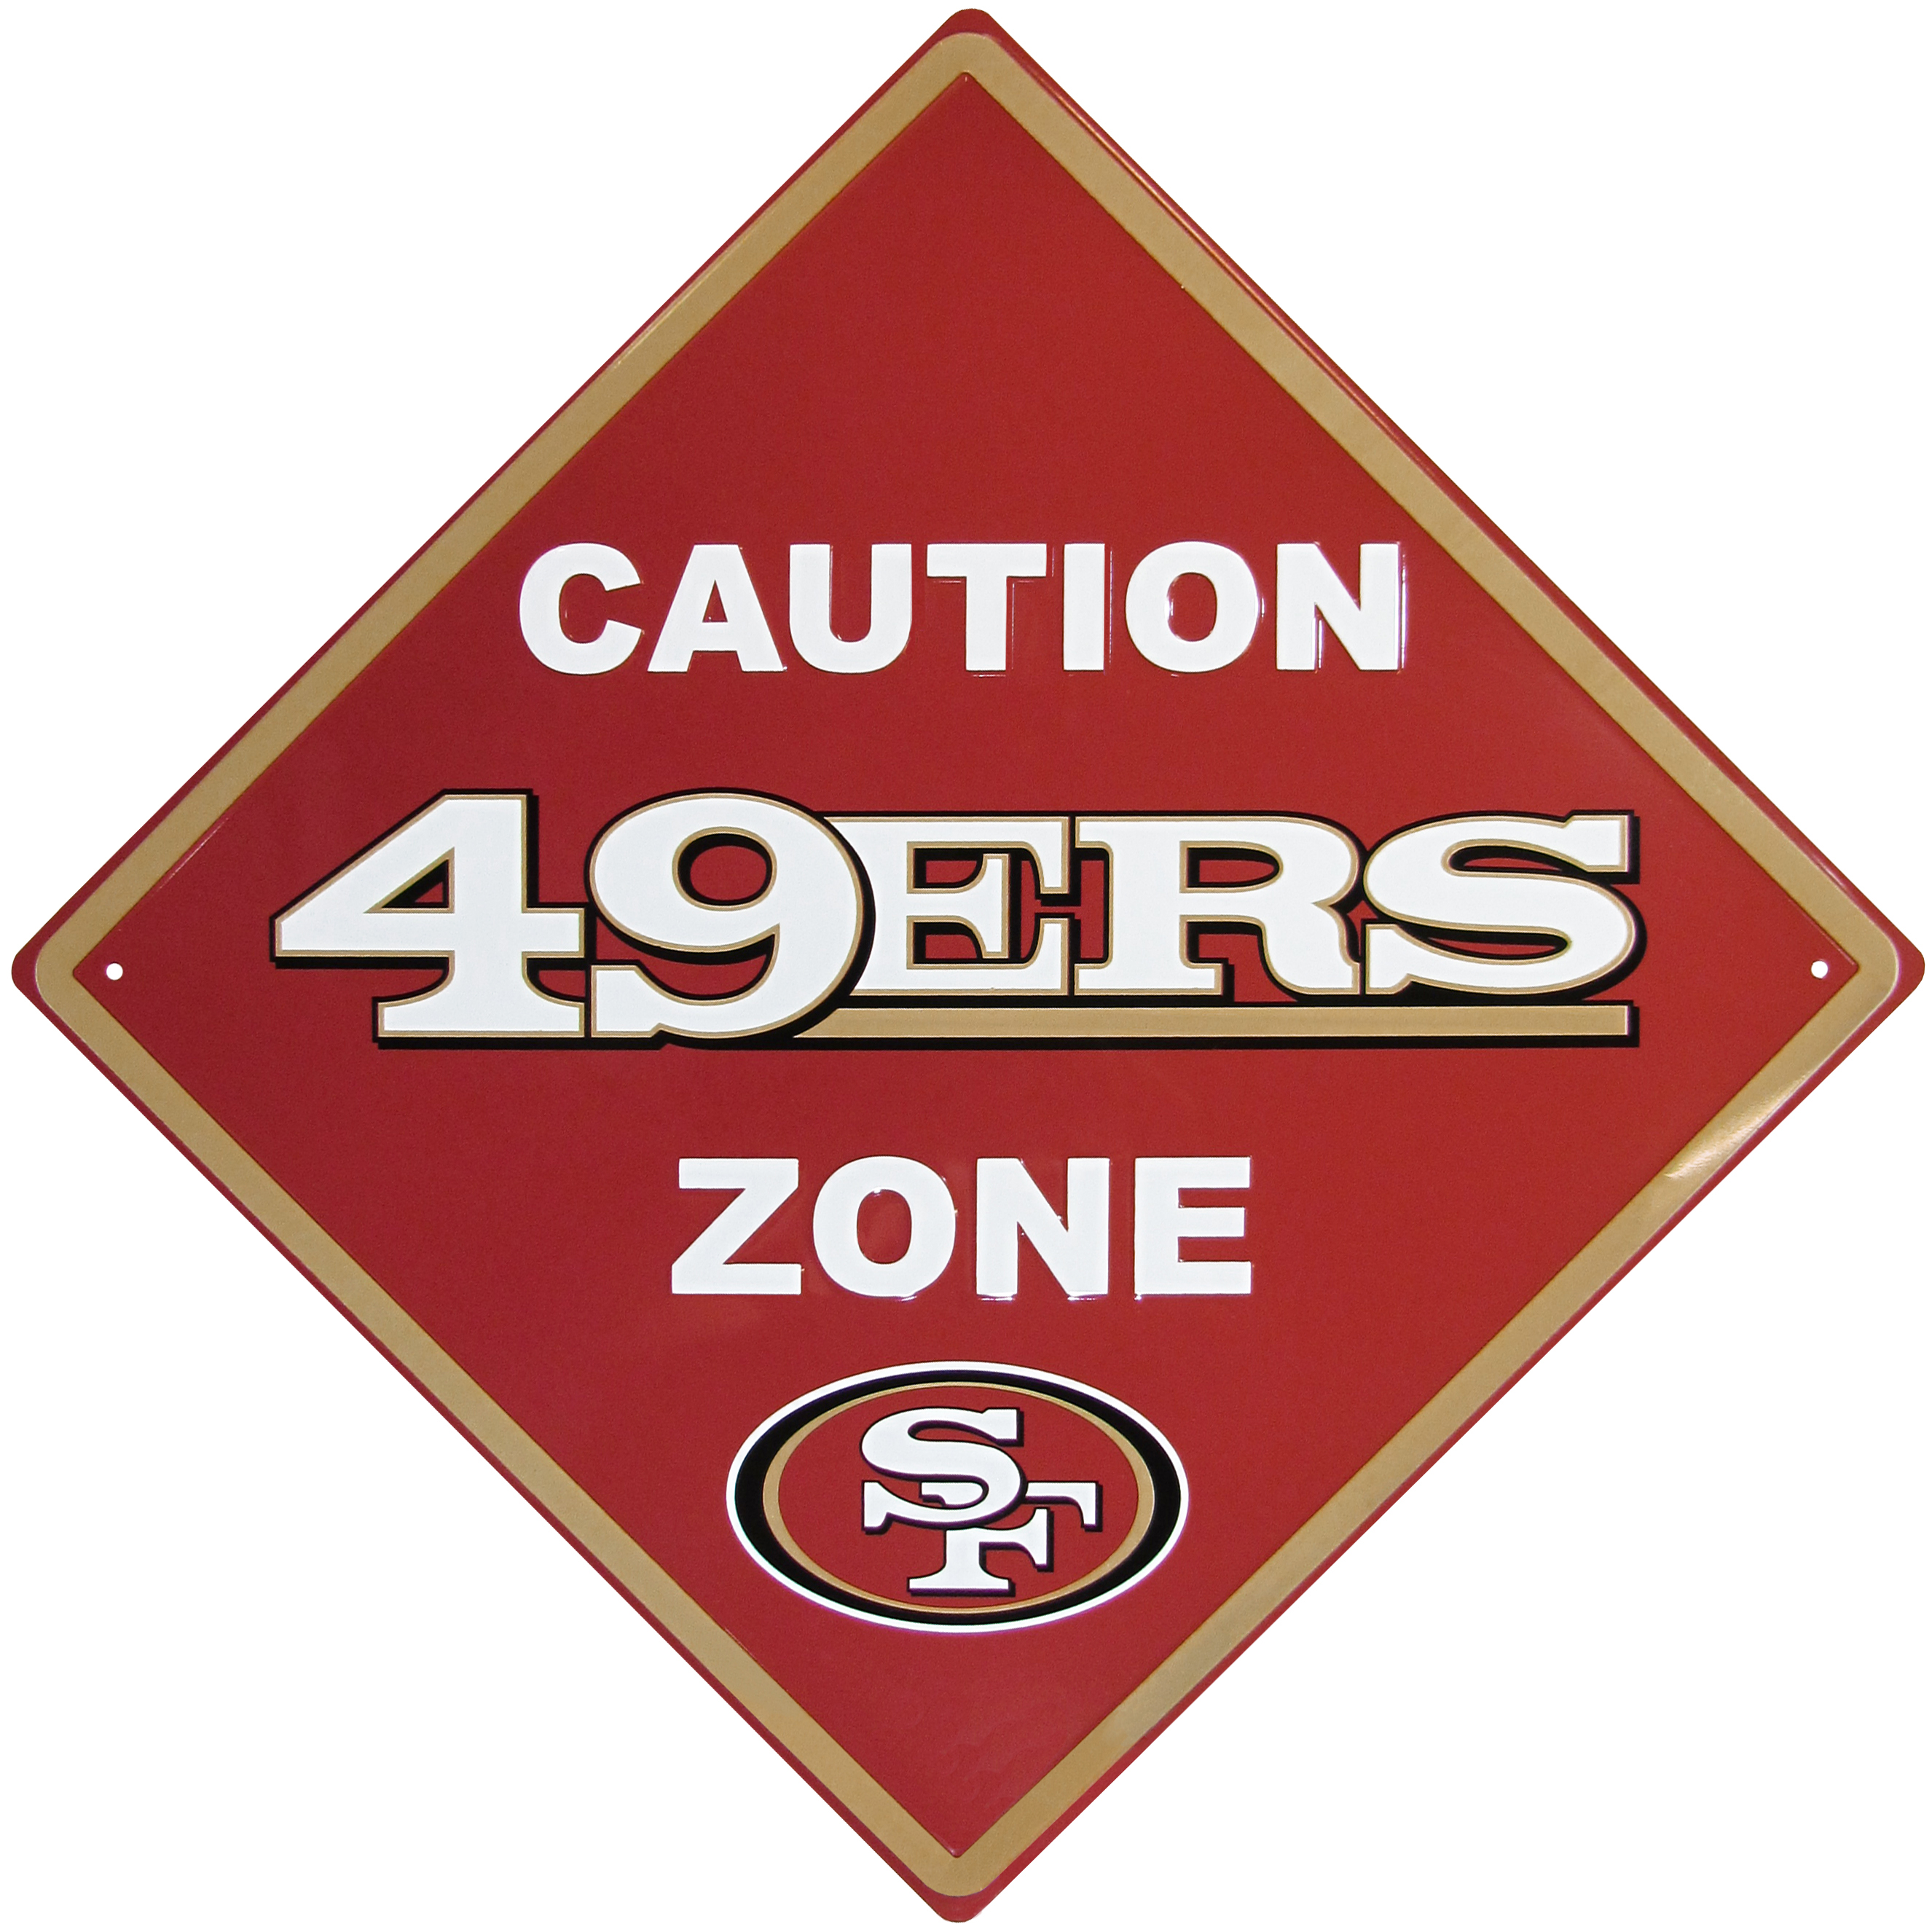 San Francisco 49ers Caution Wall Sign Plaque - Let everyone know that they are entering San Francisco 49ers territory! Our 14 inch caution wall plaques are a the perfect way to convert any room into a fan cave! The light-weight aluminum signs mount easily to any wall and are perfect for the home or office.